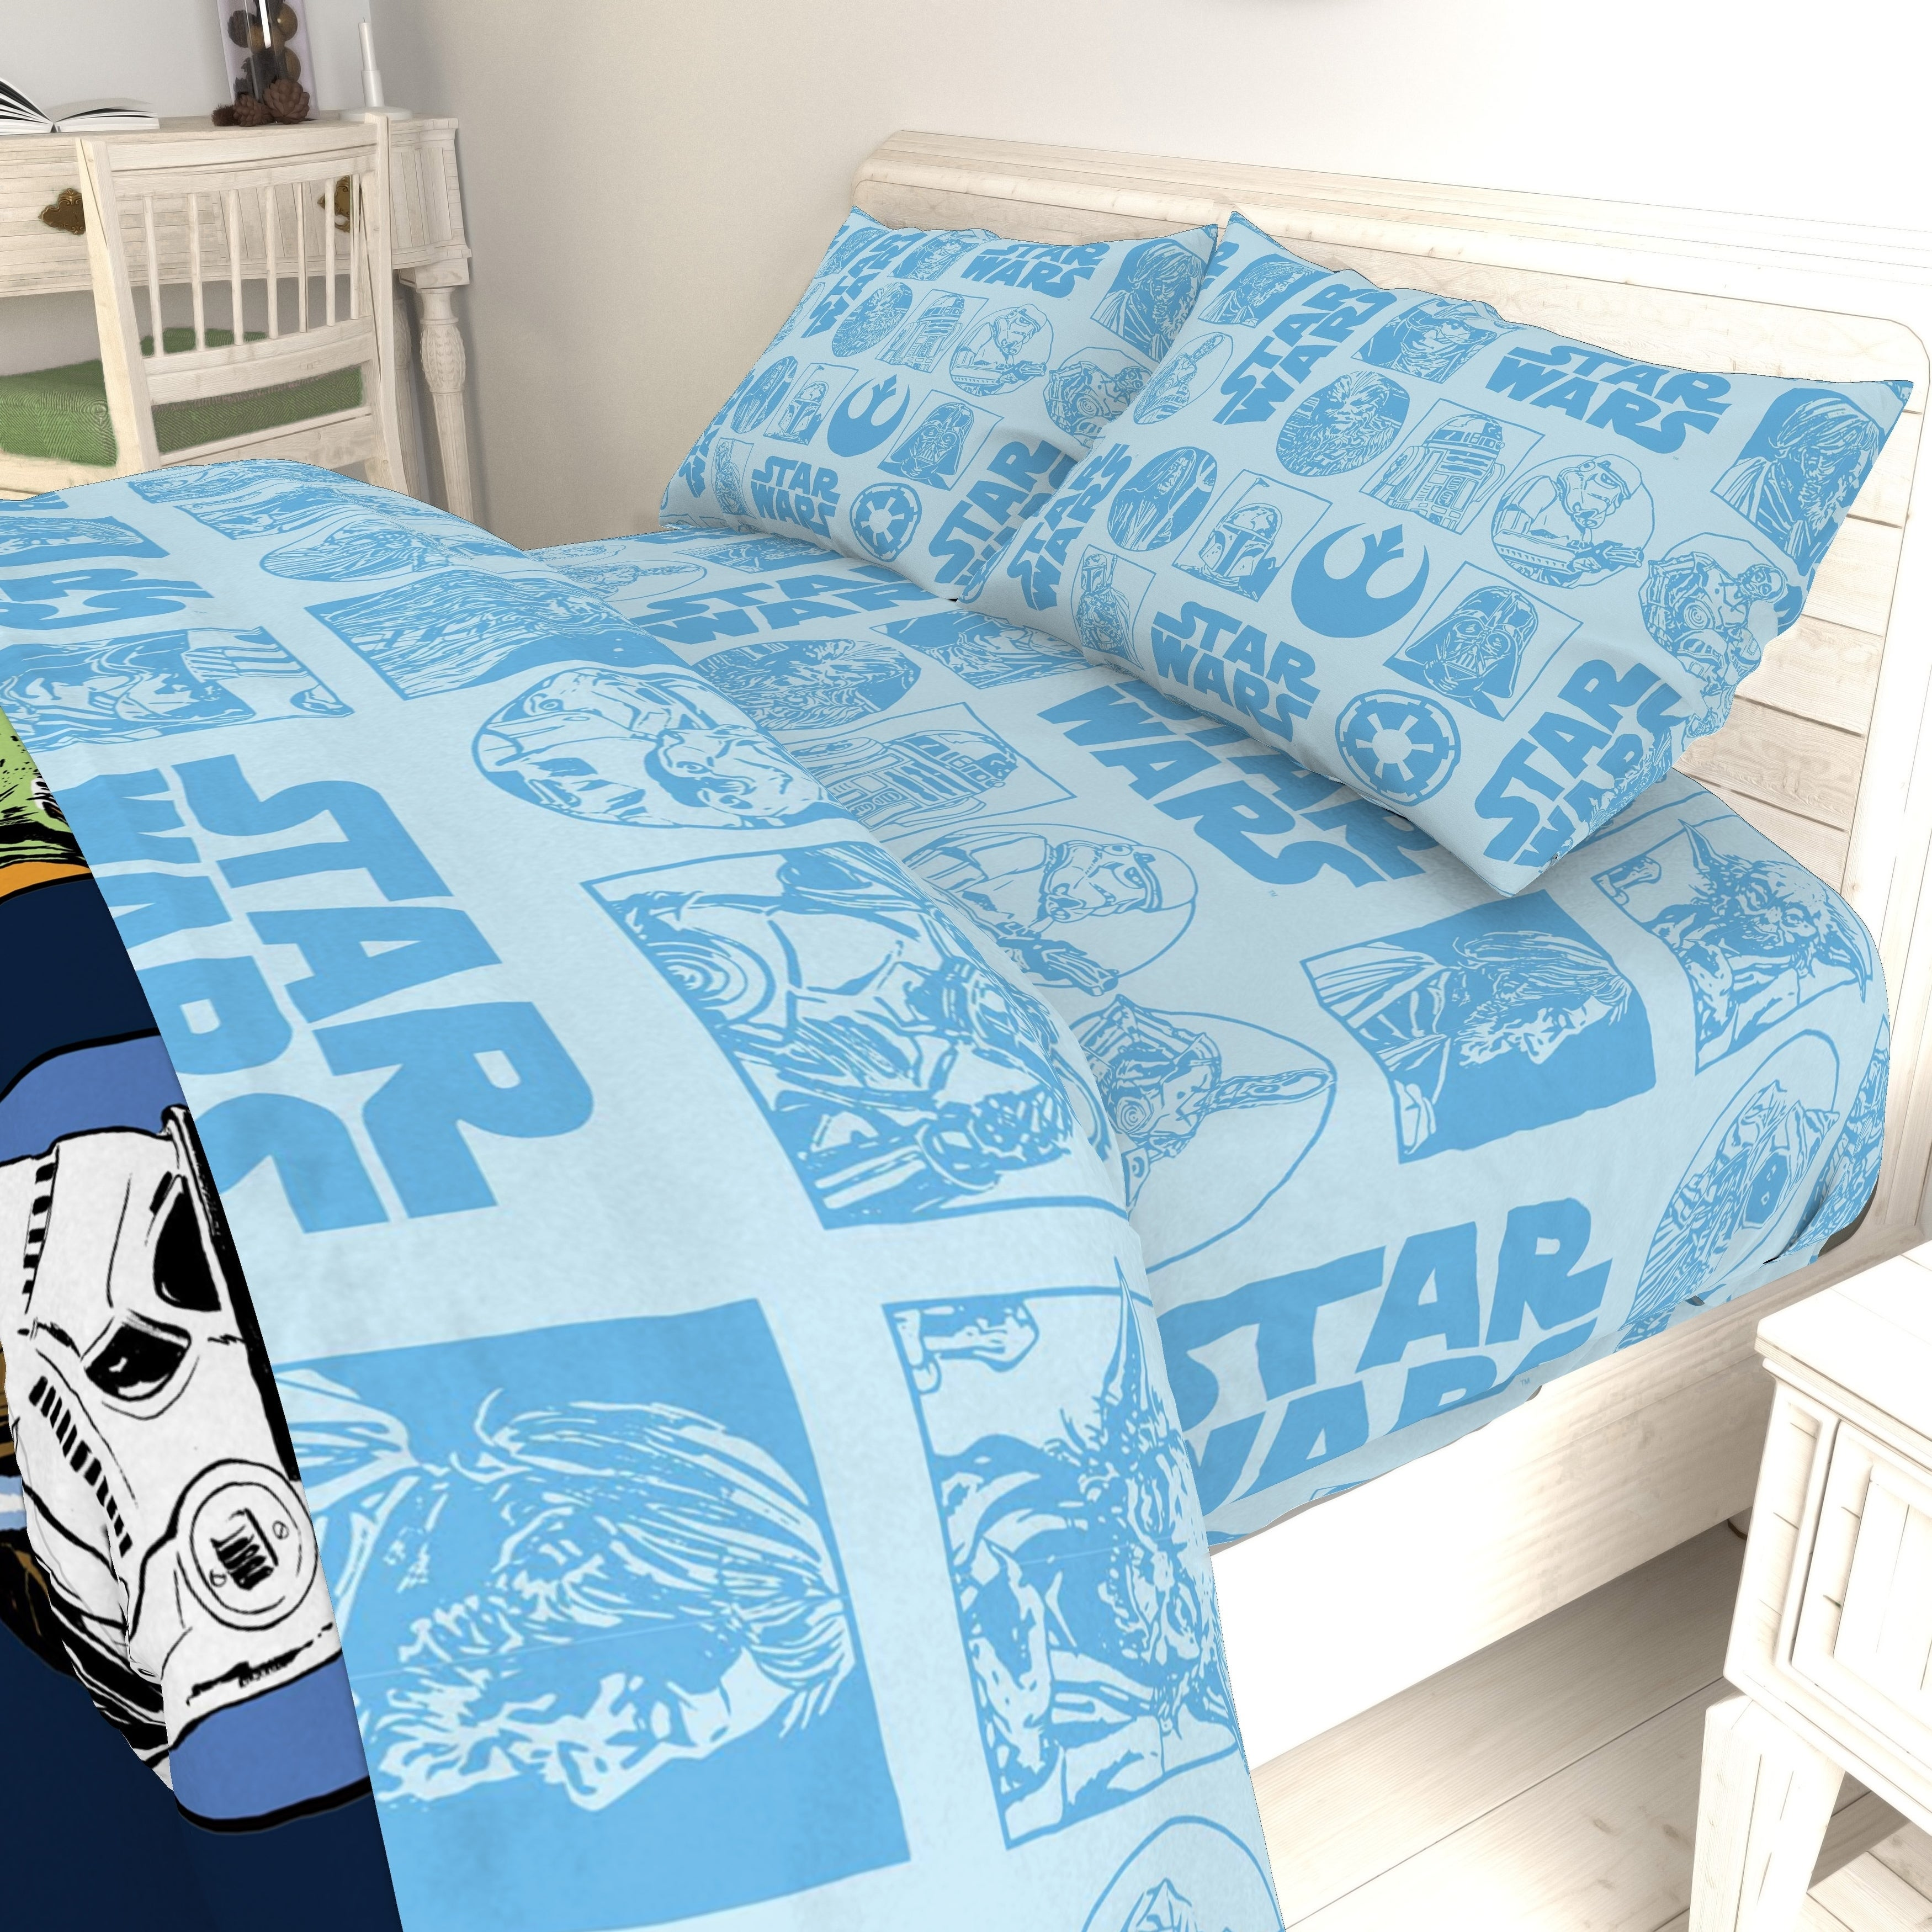 Star Wars Galactic Grid Twin Sheet Set Overstock 23480126